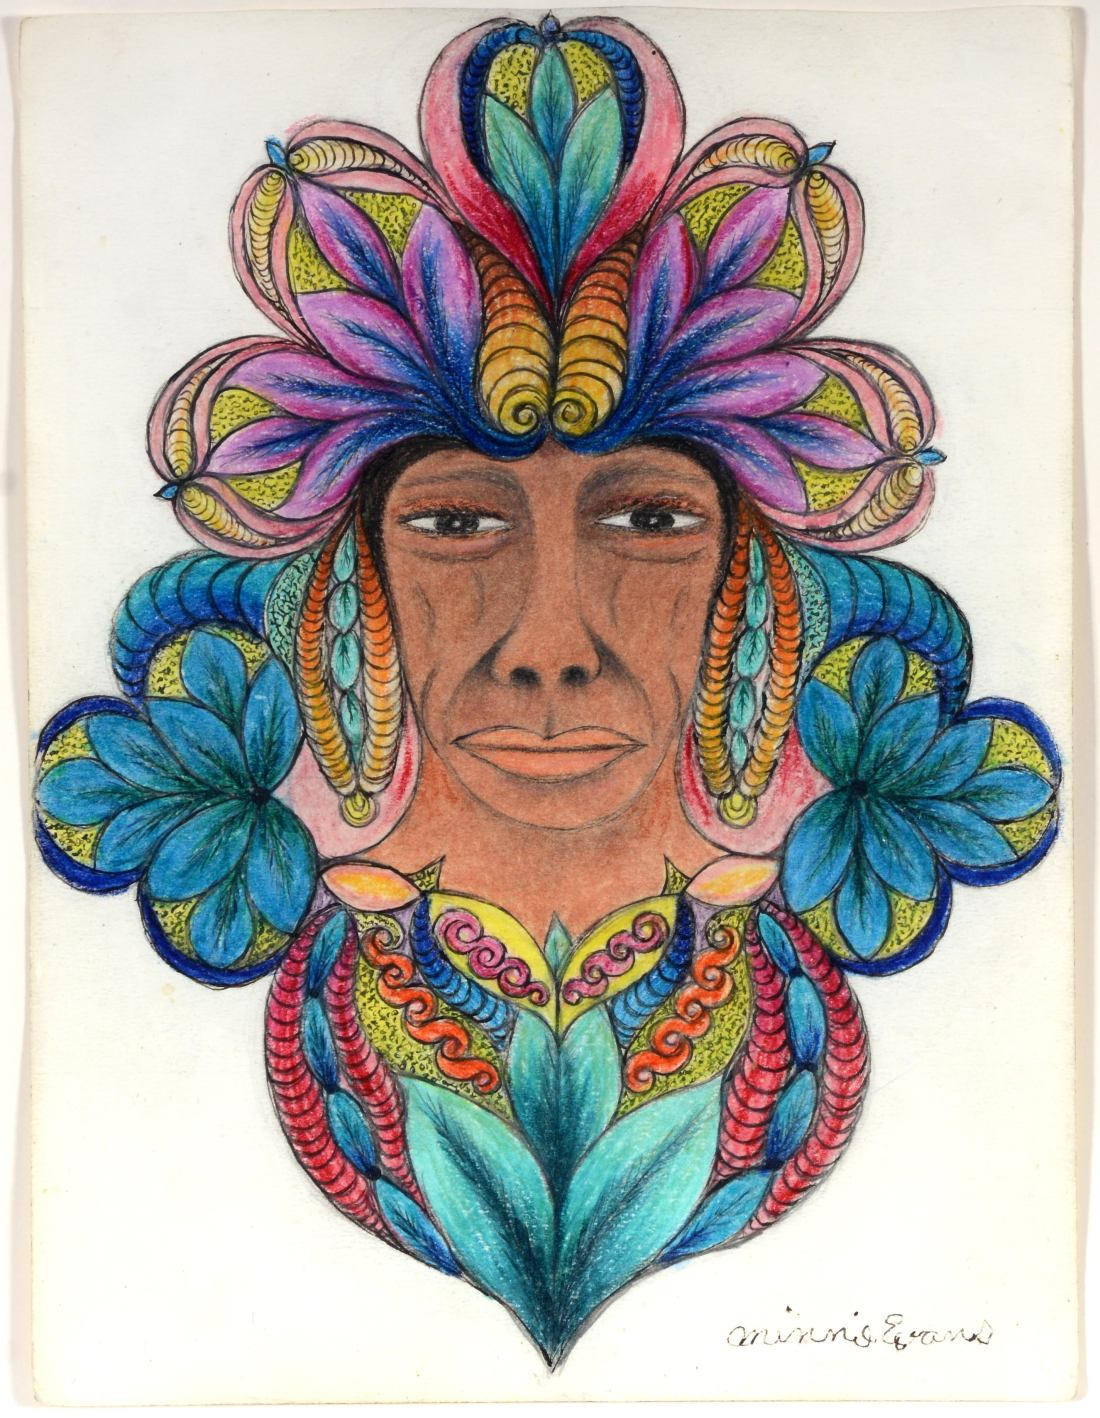 A circa 1960s portrait by Minnie Evans shows a copper-colored face of indeterminate gender crowned with an elaborate, colorful headdress and surrounded by flourishing plants.